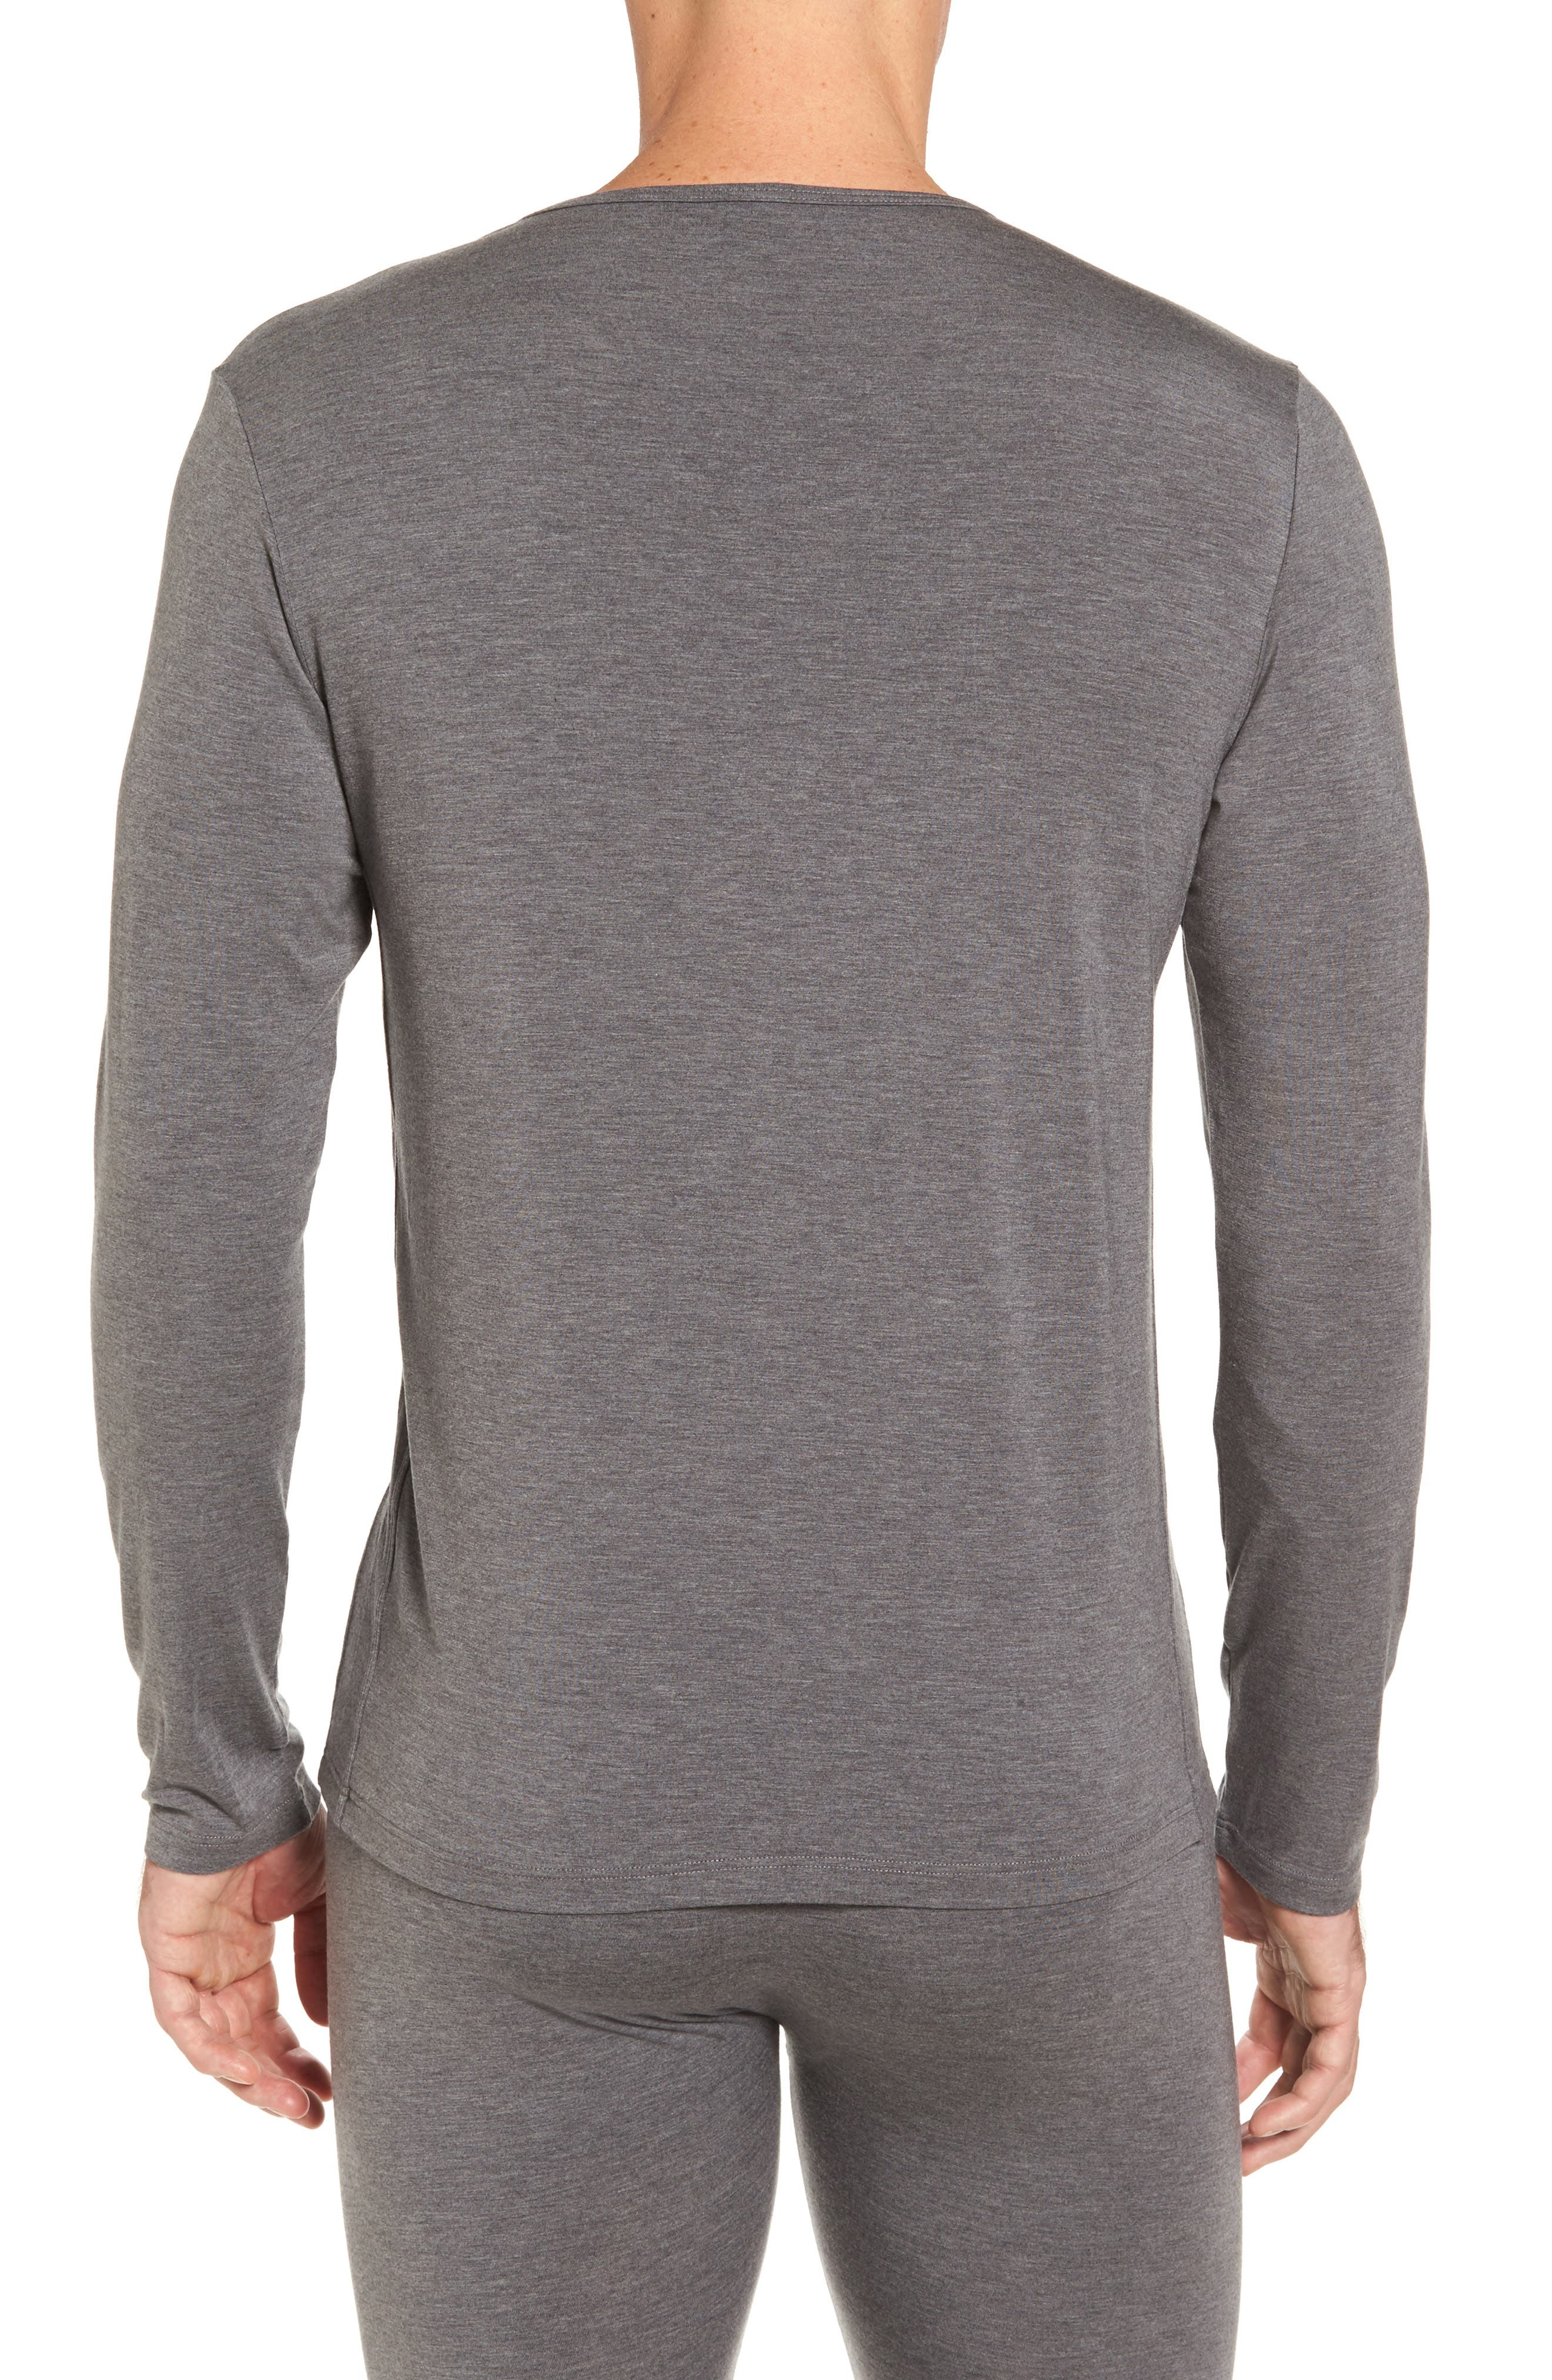 Thermal Long Sleeve T-Shirt,                             Alternate thumbnail 2, color,                             Charcoal